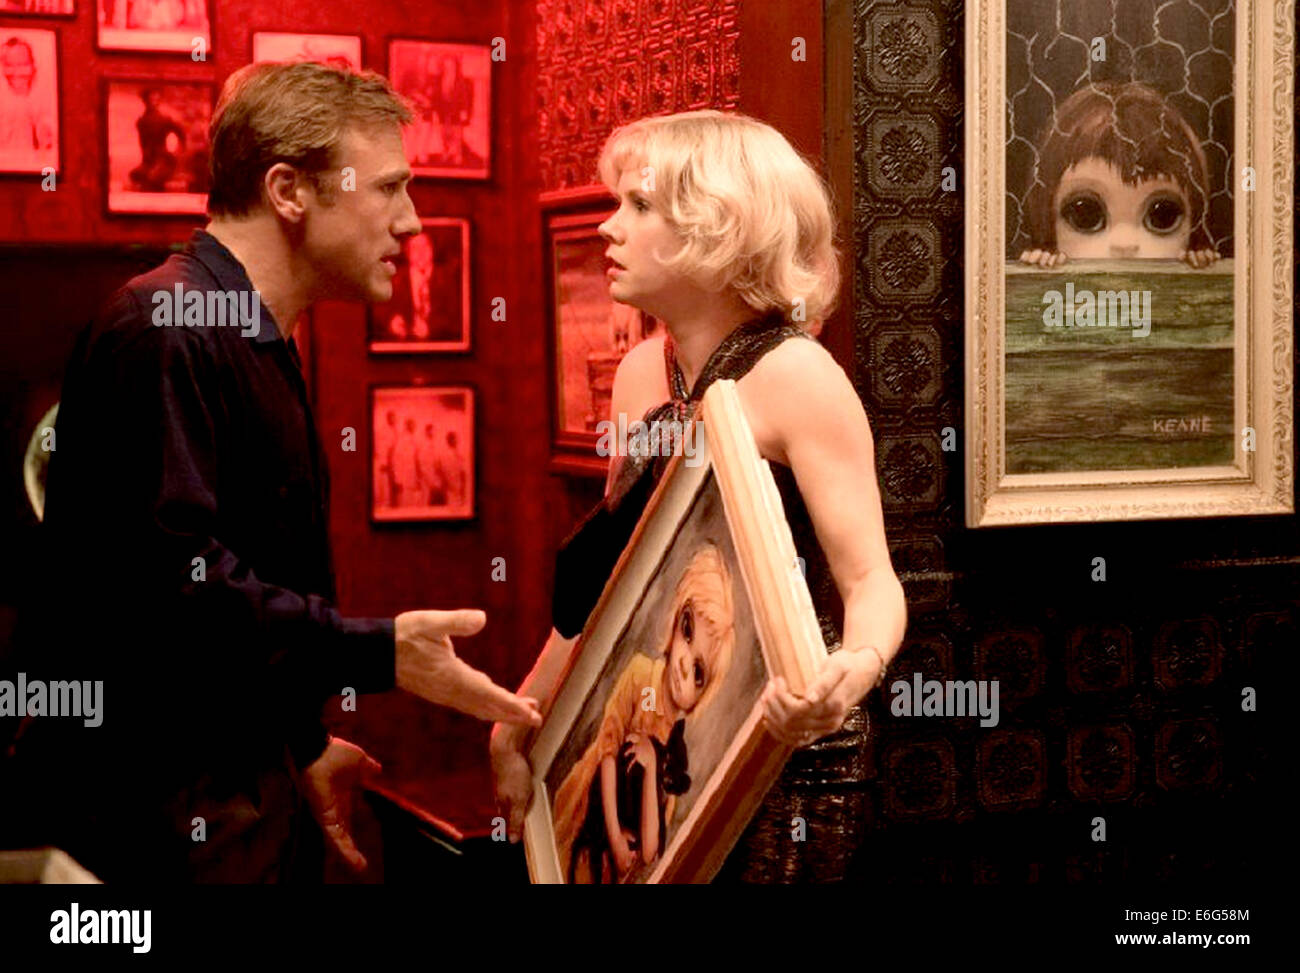 BIG EYES 2014 Weinstein Company film with Amy Adams and Christoph Waltz - Stock Image